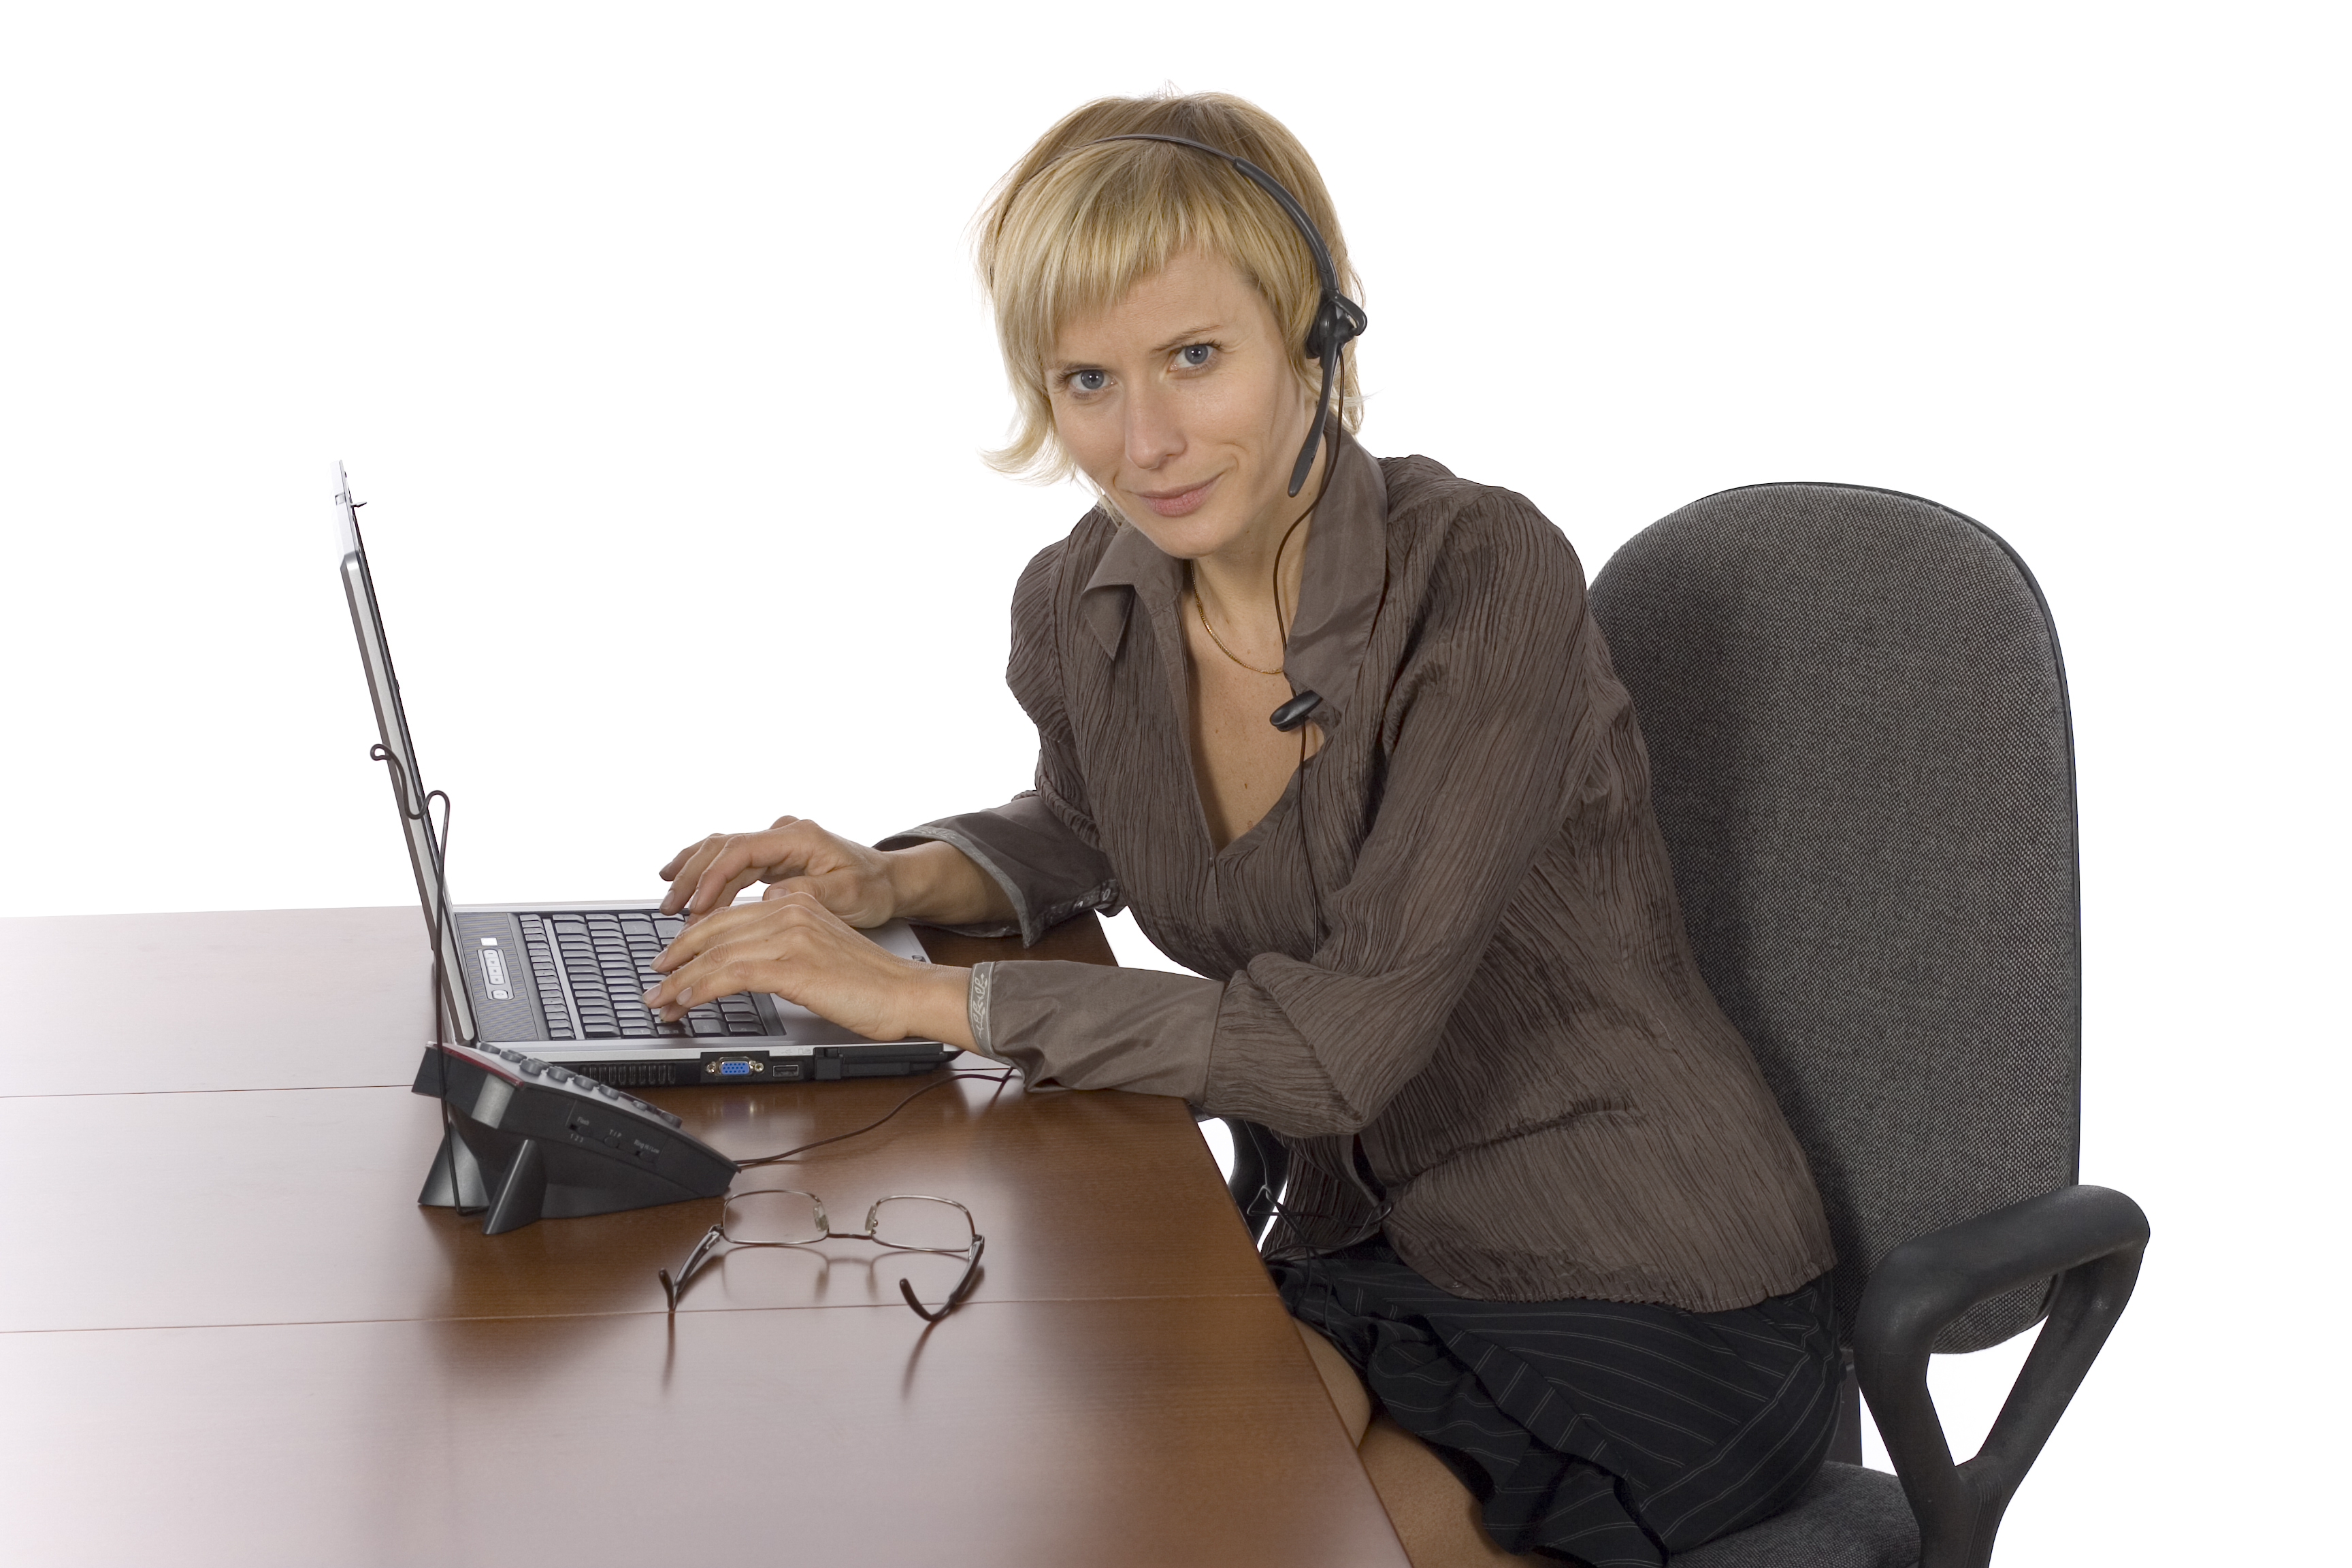 Ergonomics Makes Good Business Sense